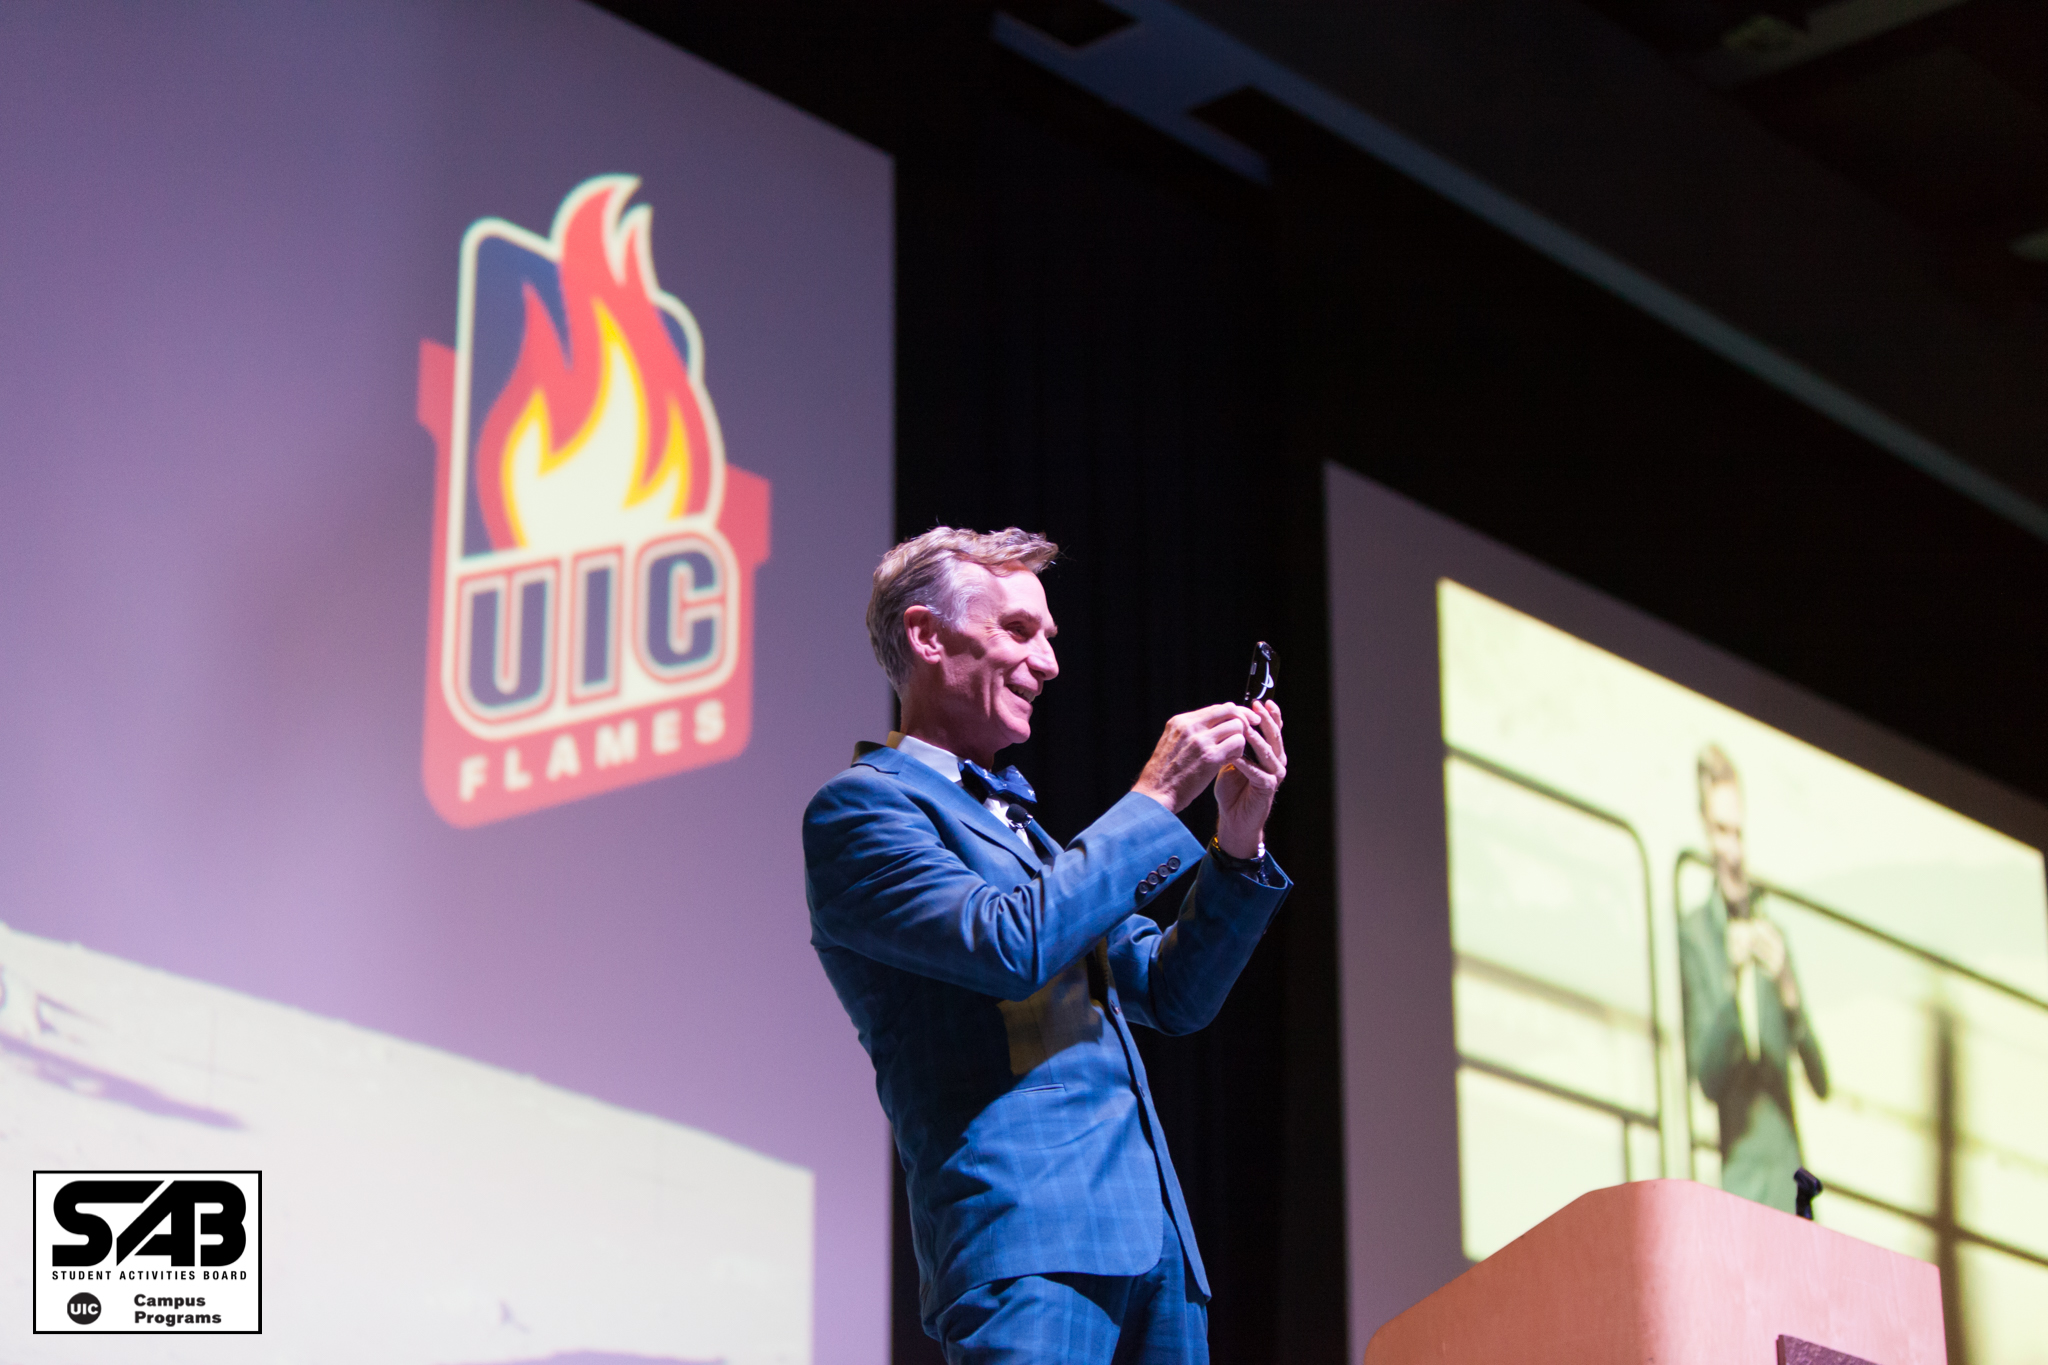 Bill Nye presents at University of Illinois at Chicago